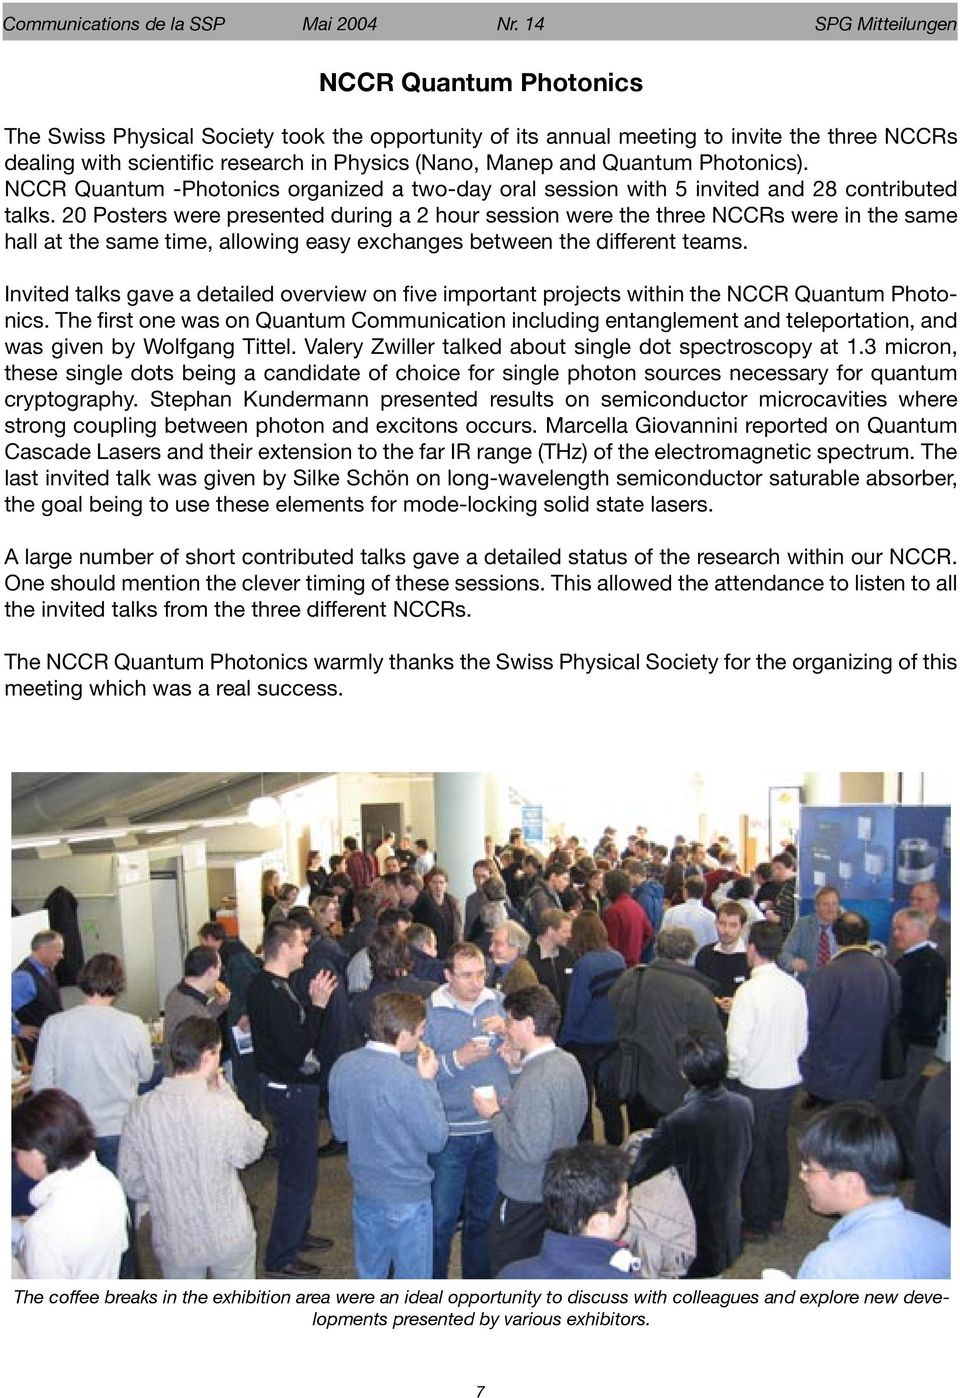 Quantum Photonics). NCCR Quantum -Photonics organized a two-day oral session with 5 invited and 28 contributed talks.